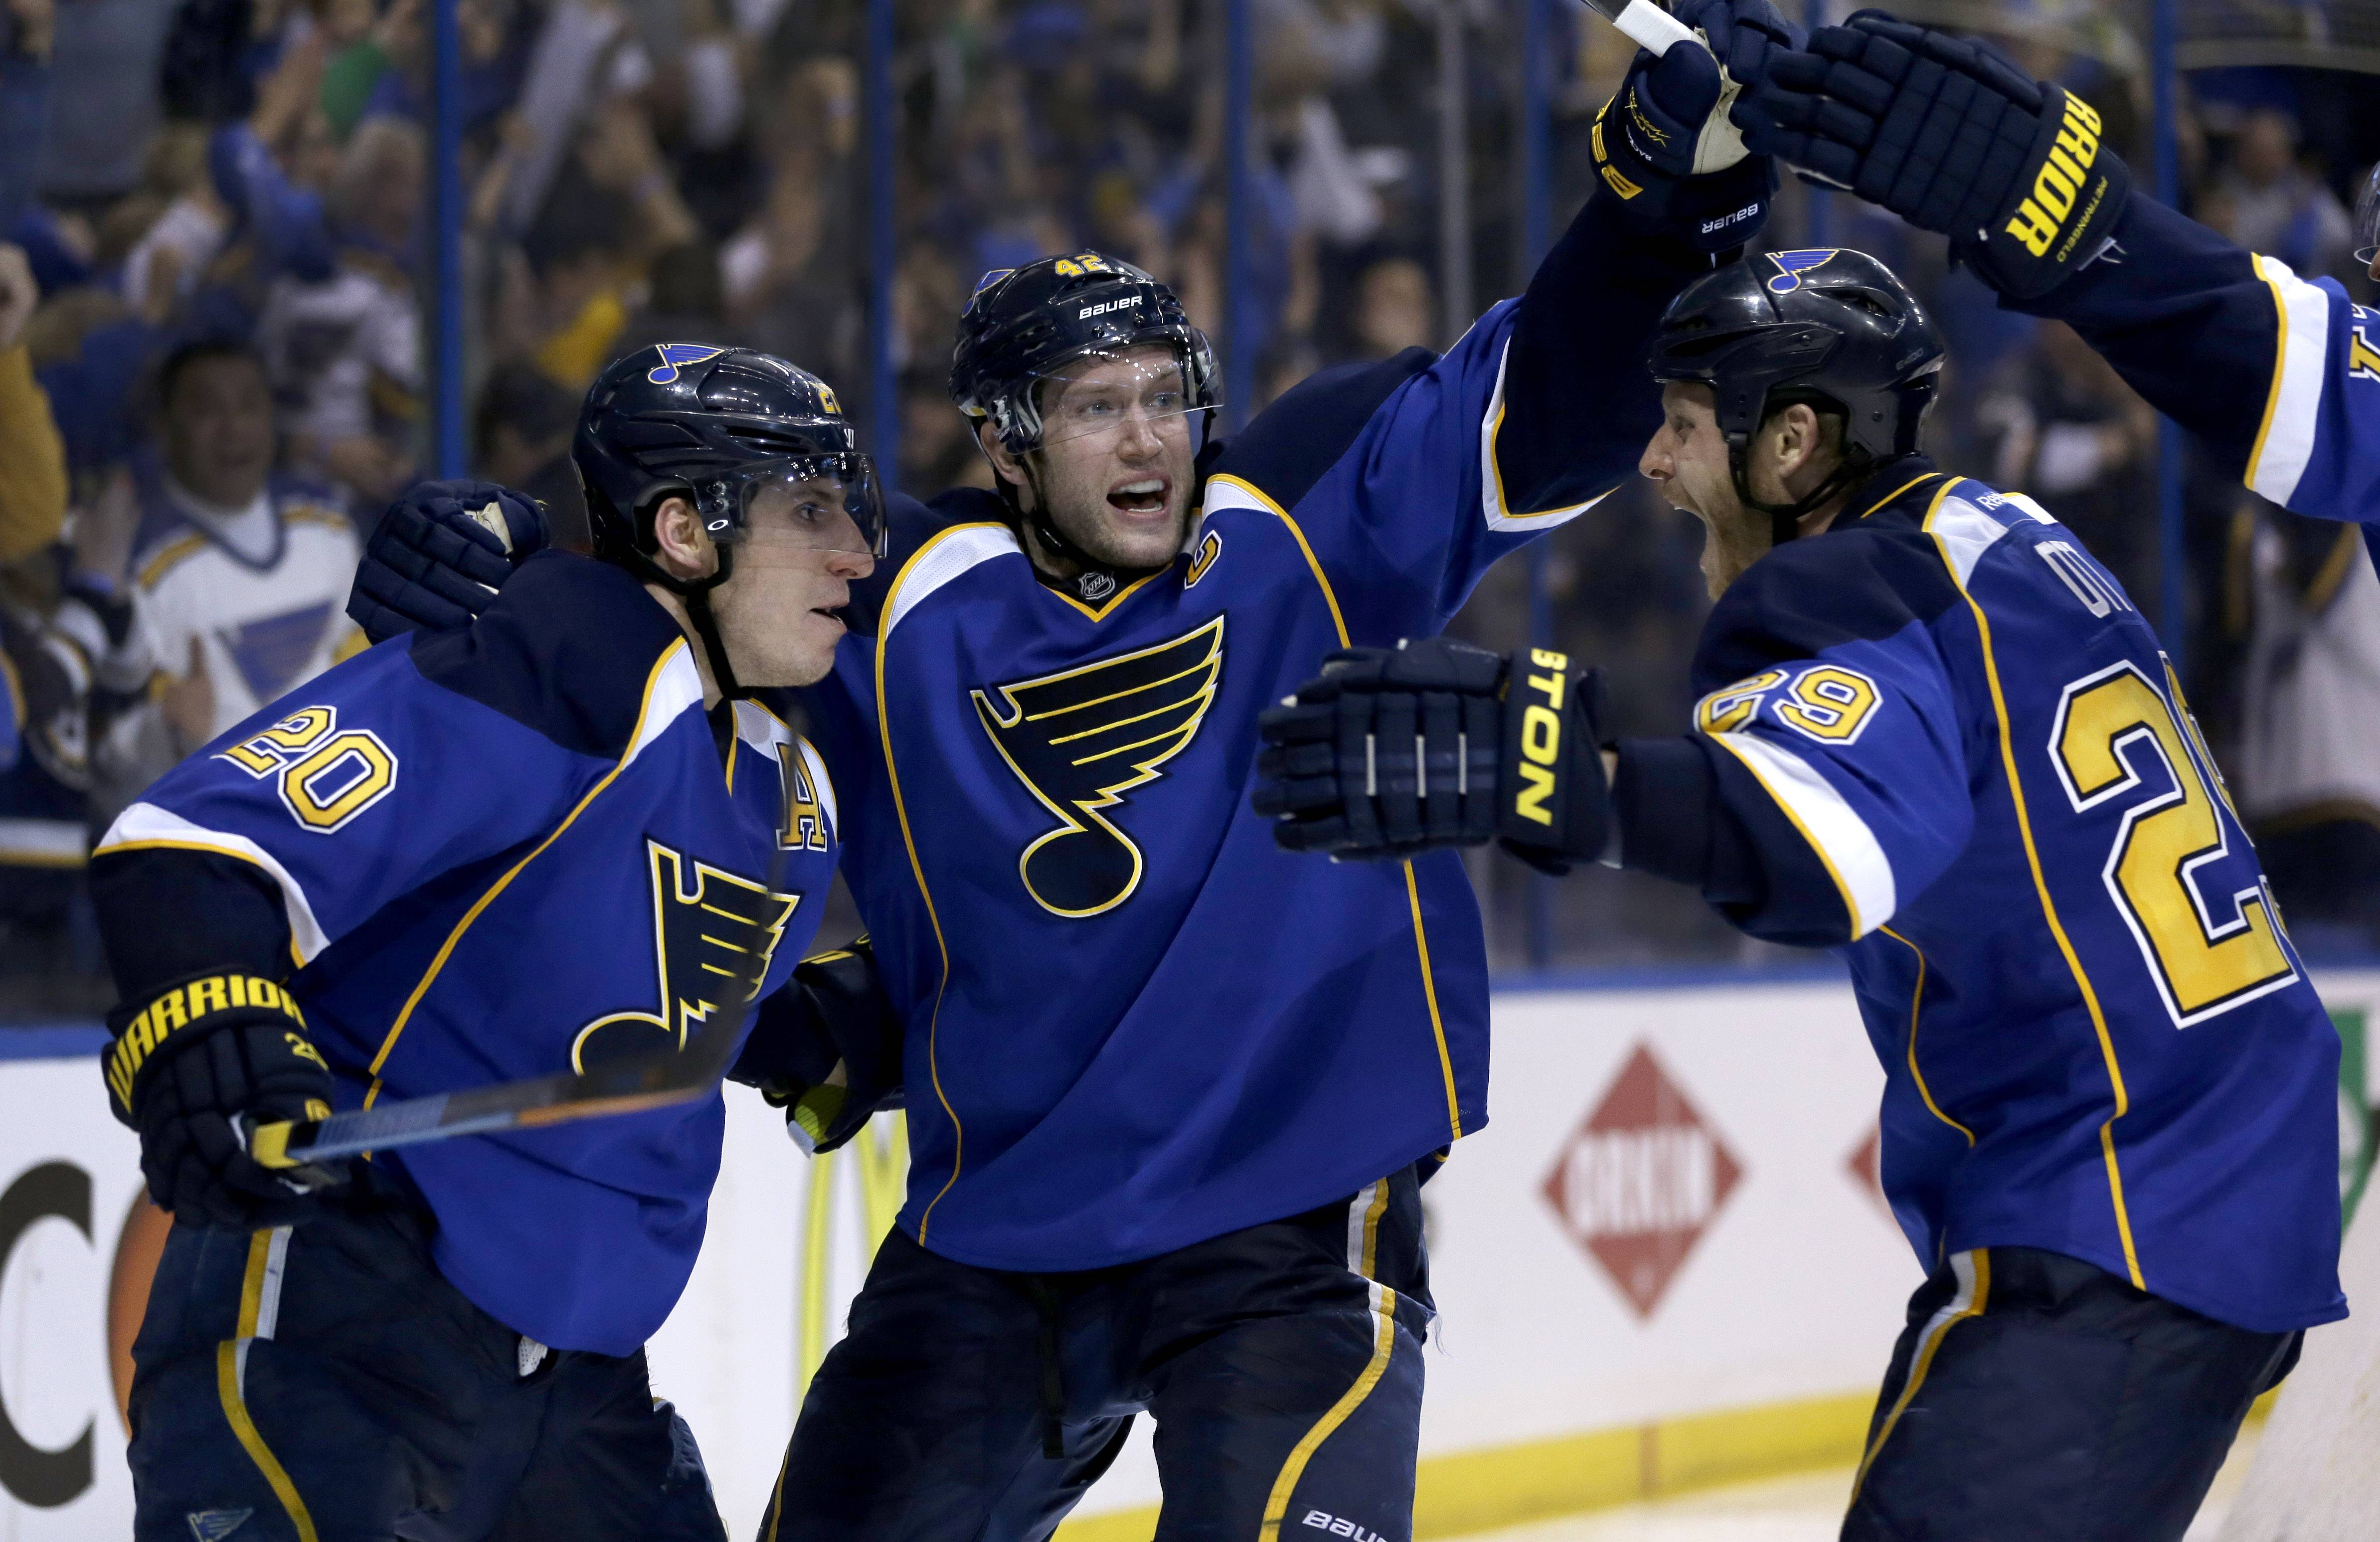 St. Louis Blues' Alexander Steen, left, is congratulated by teammates David Backes, center, and Steve Ott, right, after scoring the game-winning goal during the third overtime.